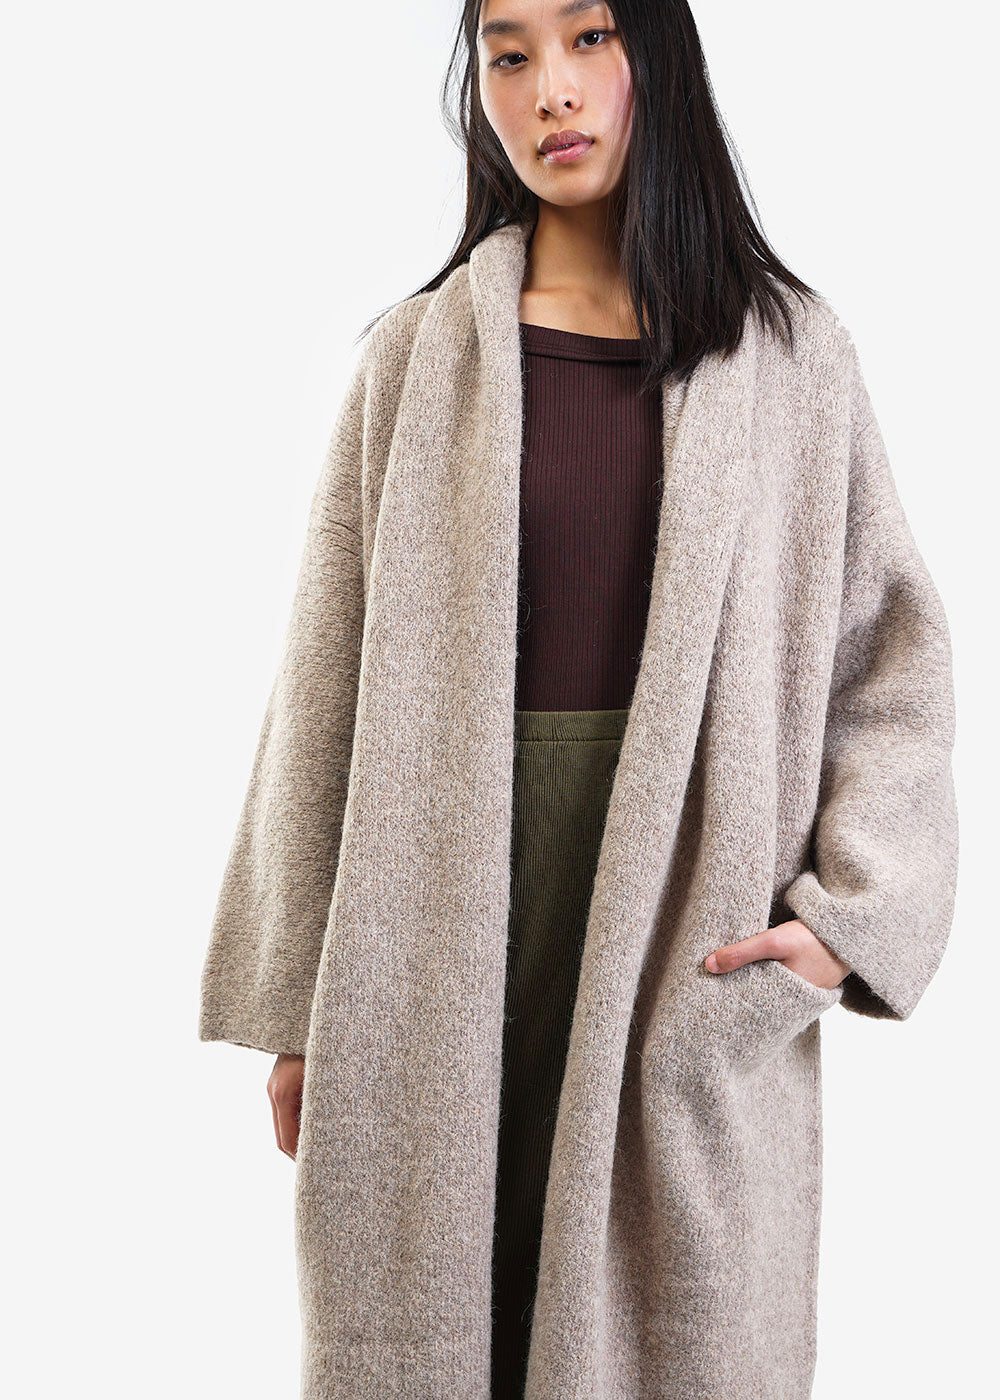 Lauren Manoogian Oatmeal Long Shawl Cardigan — Shop sustainable fashion and slow fashion at New Classics Studios